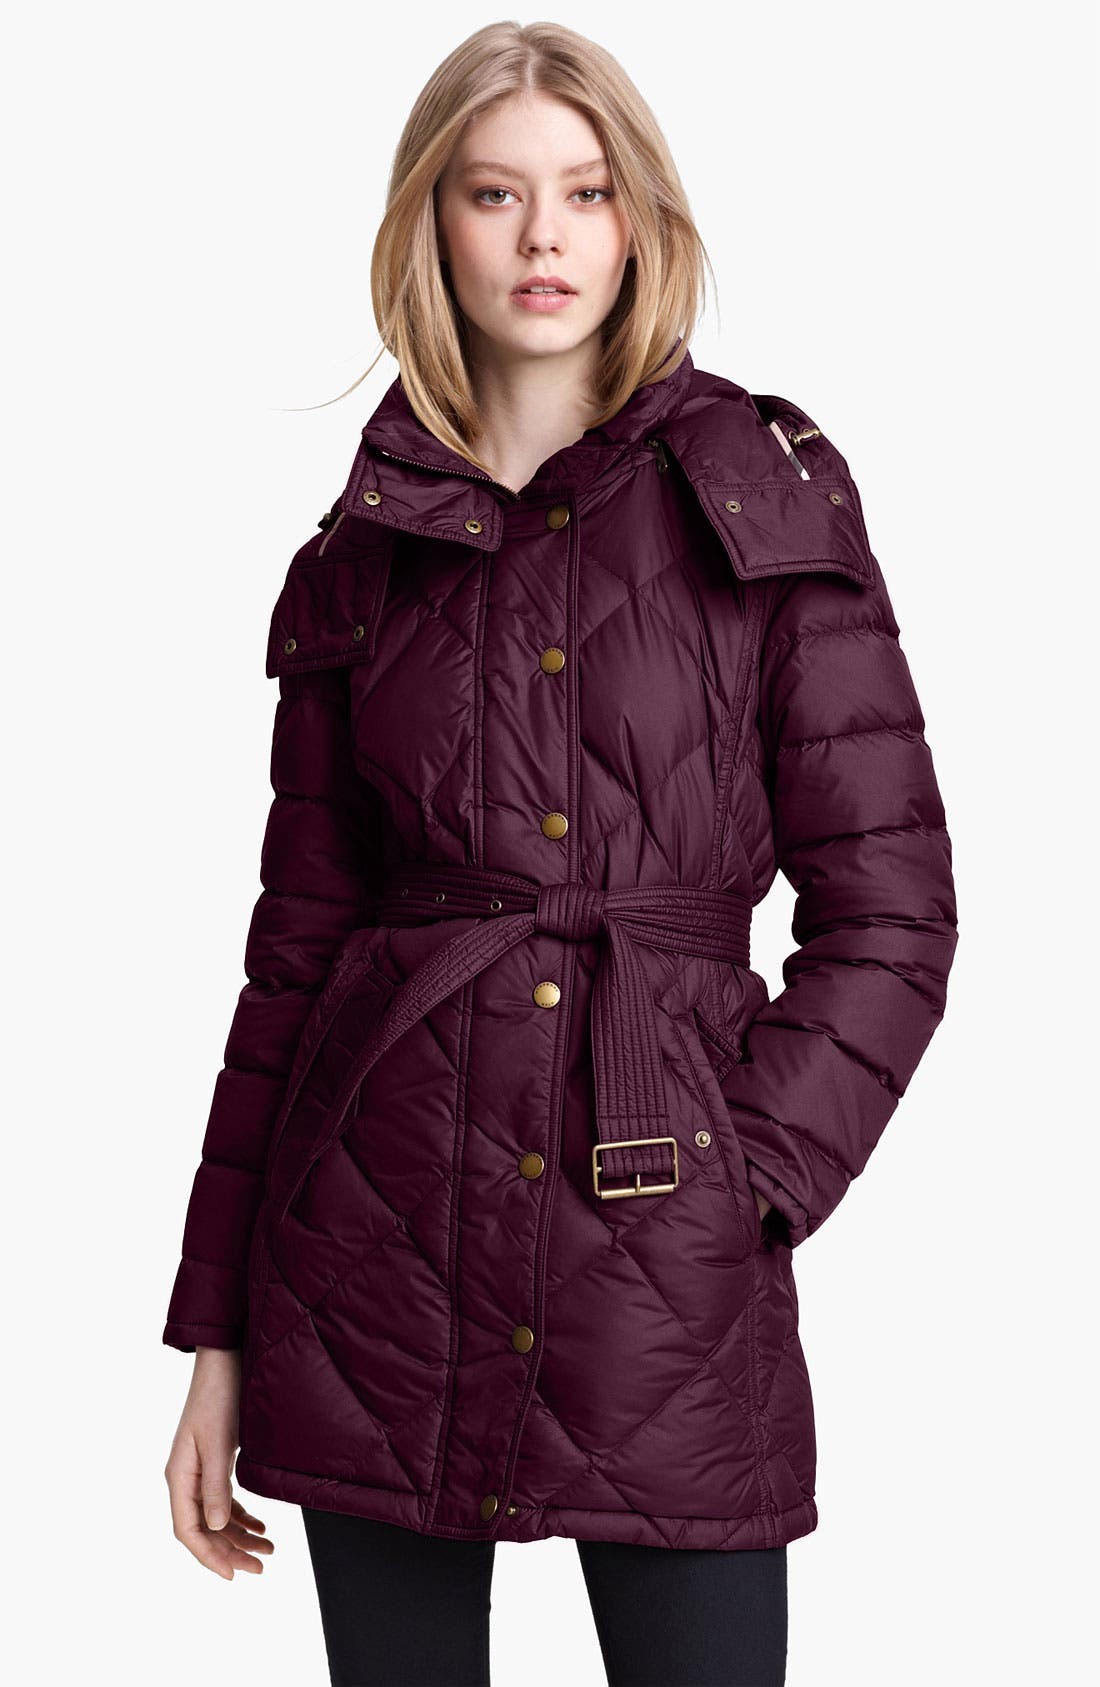 Alternate Image 1 Selected - Burberry Brit 'Eddingly' Down Jacket (Online Exclusive)